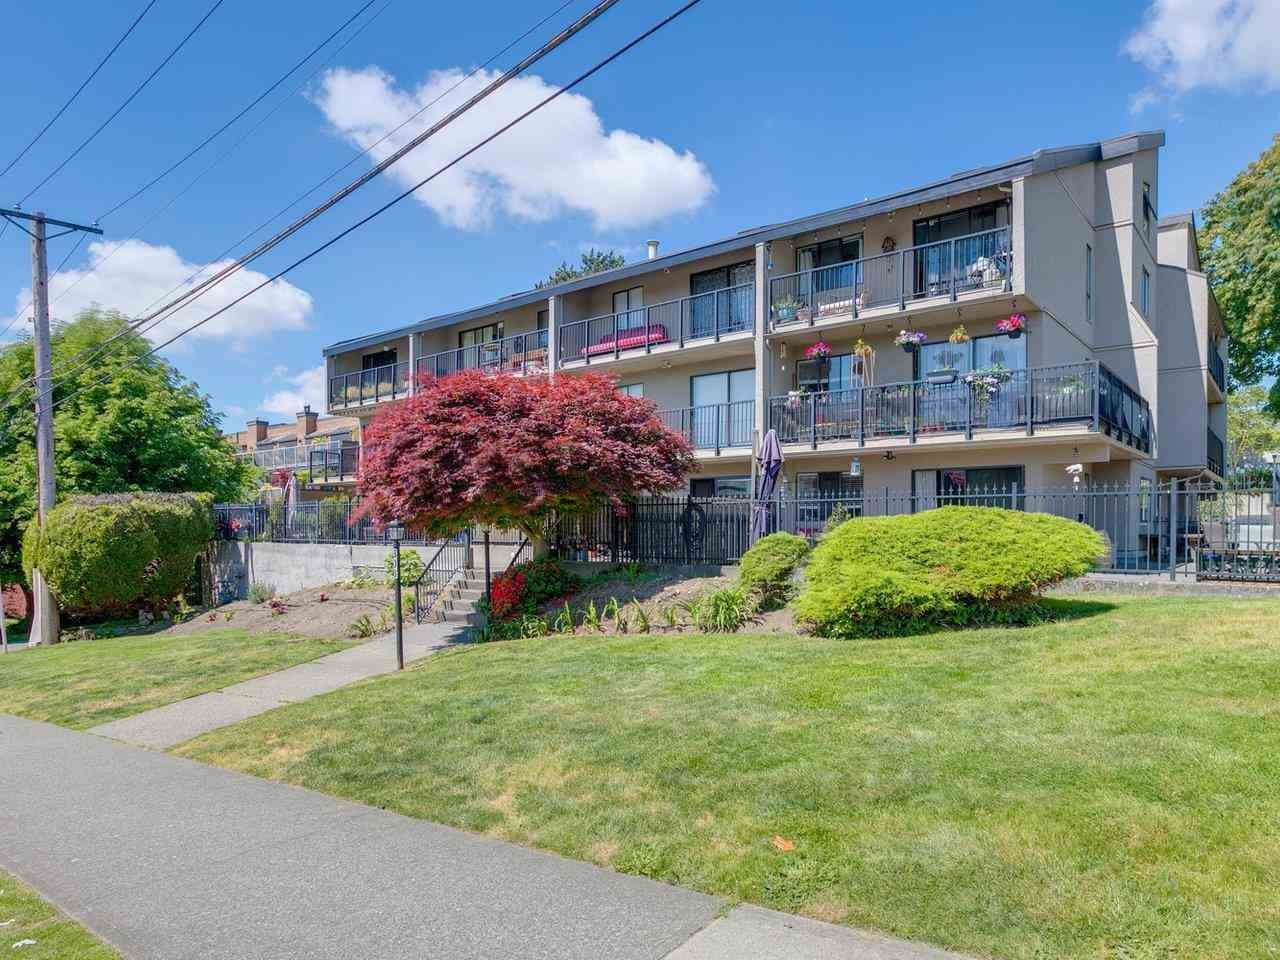 Main Photo: 205 803 QUEENS AVENUE in New Westminster: Uptown NW Condo for sale : MLS®# R2584839